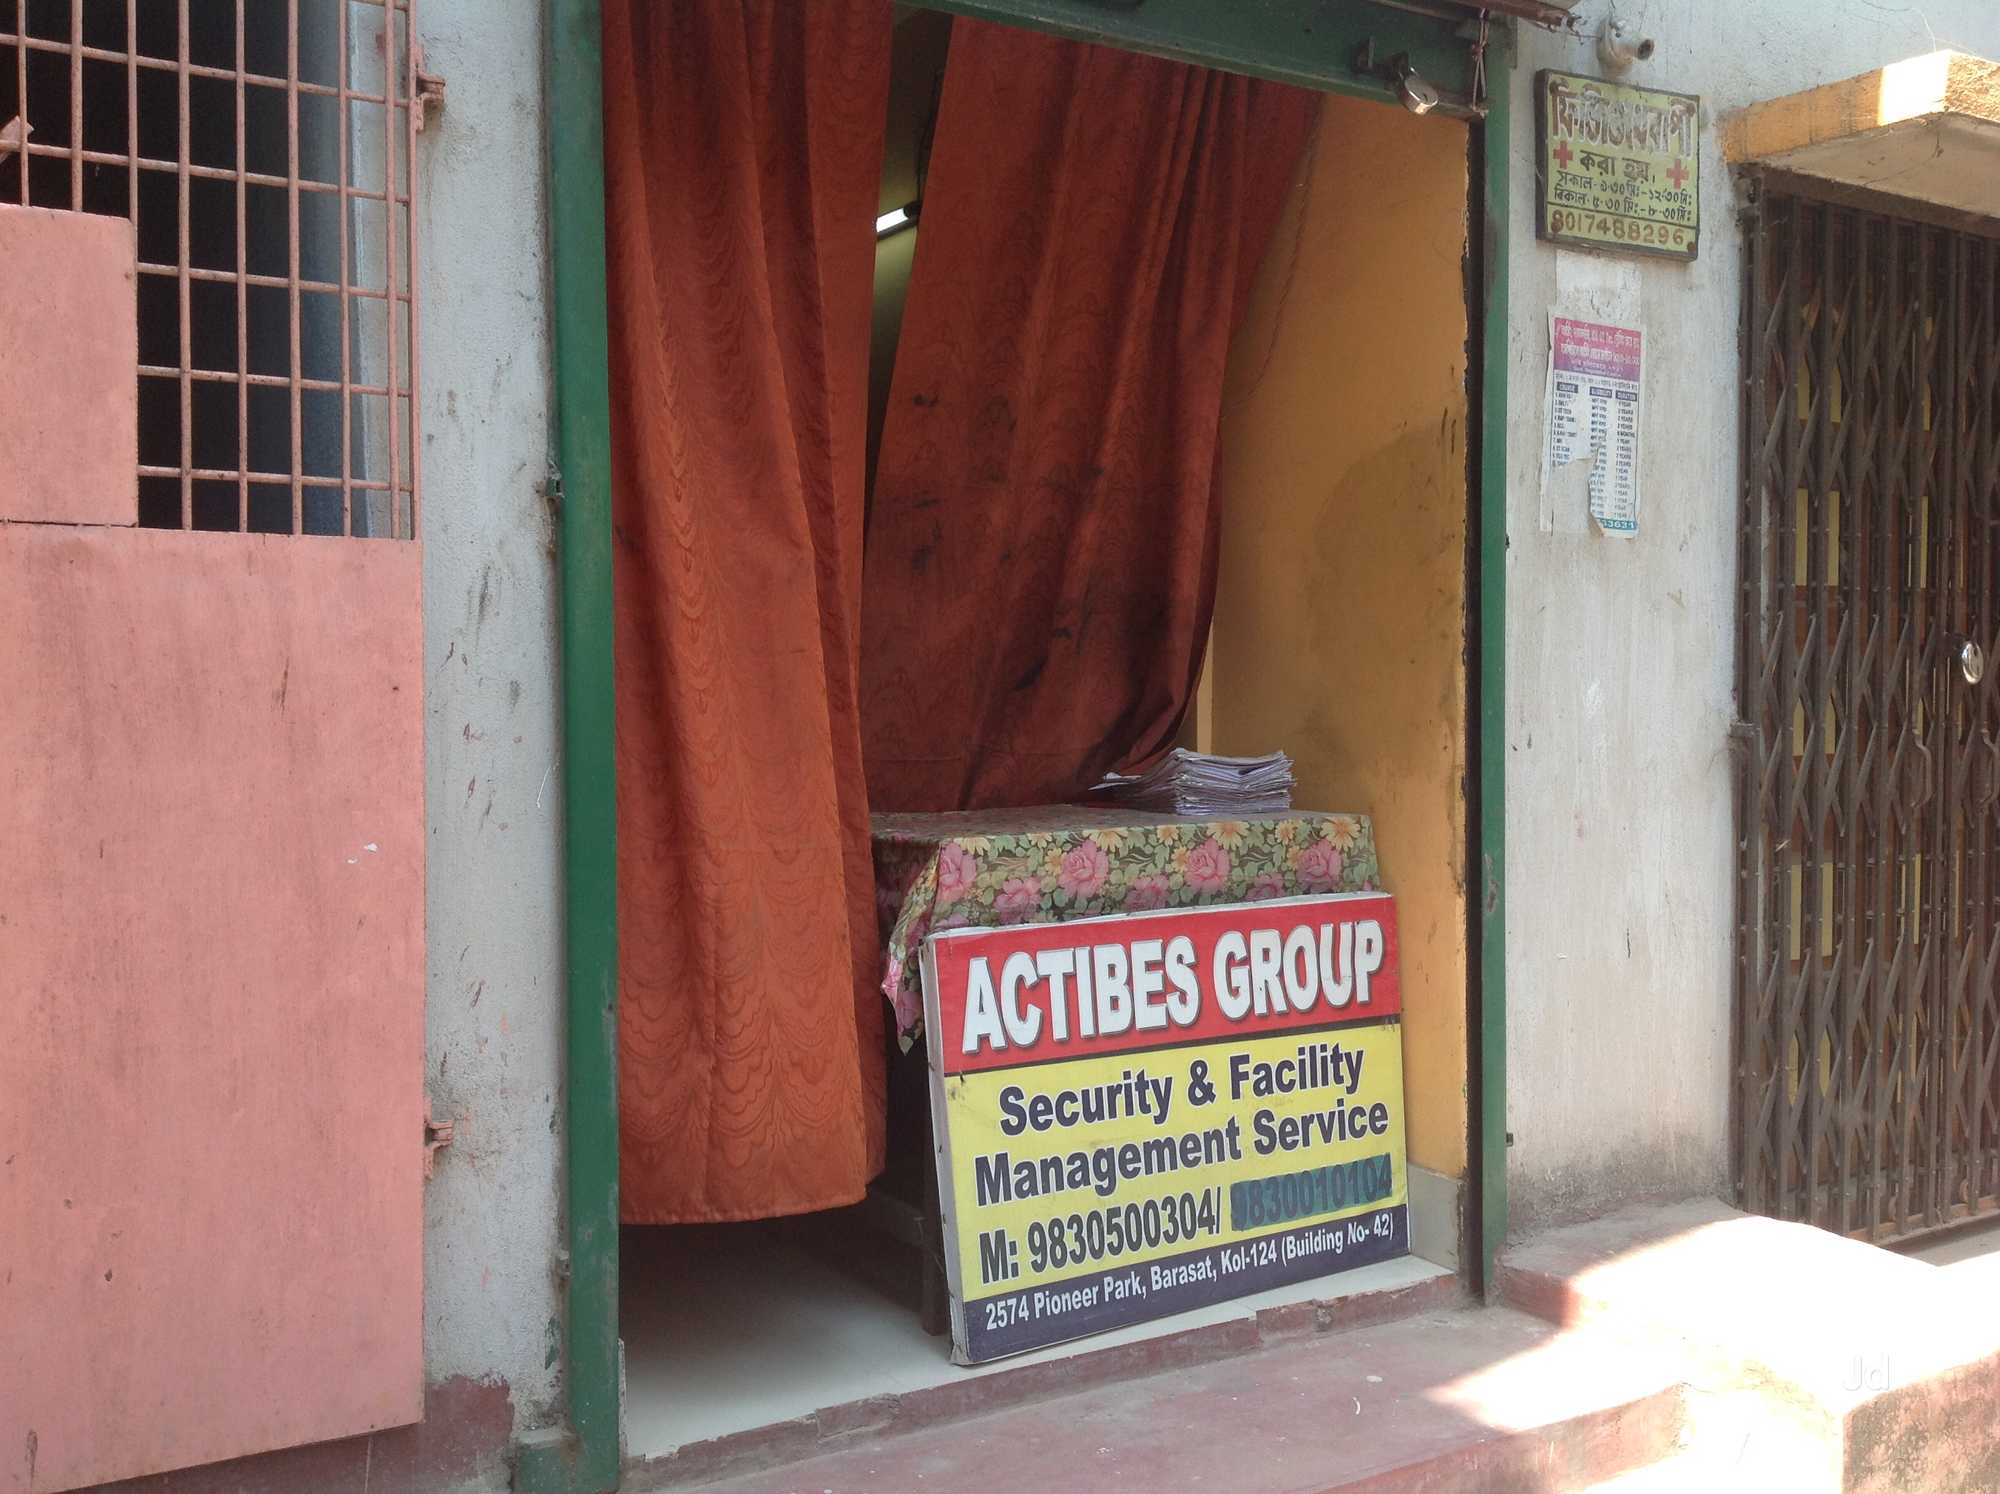 Actibes Group